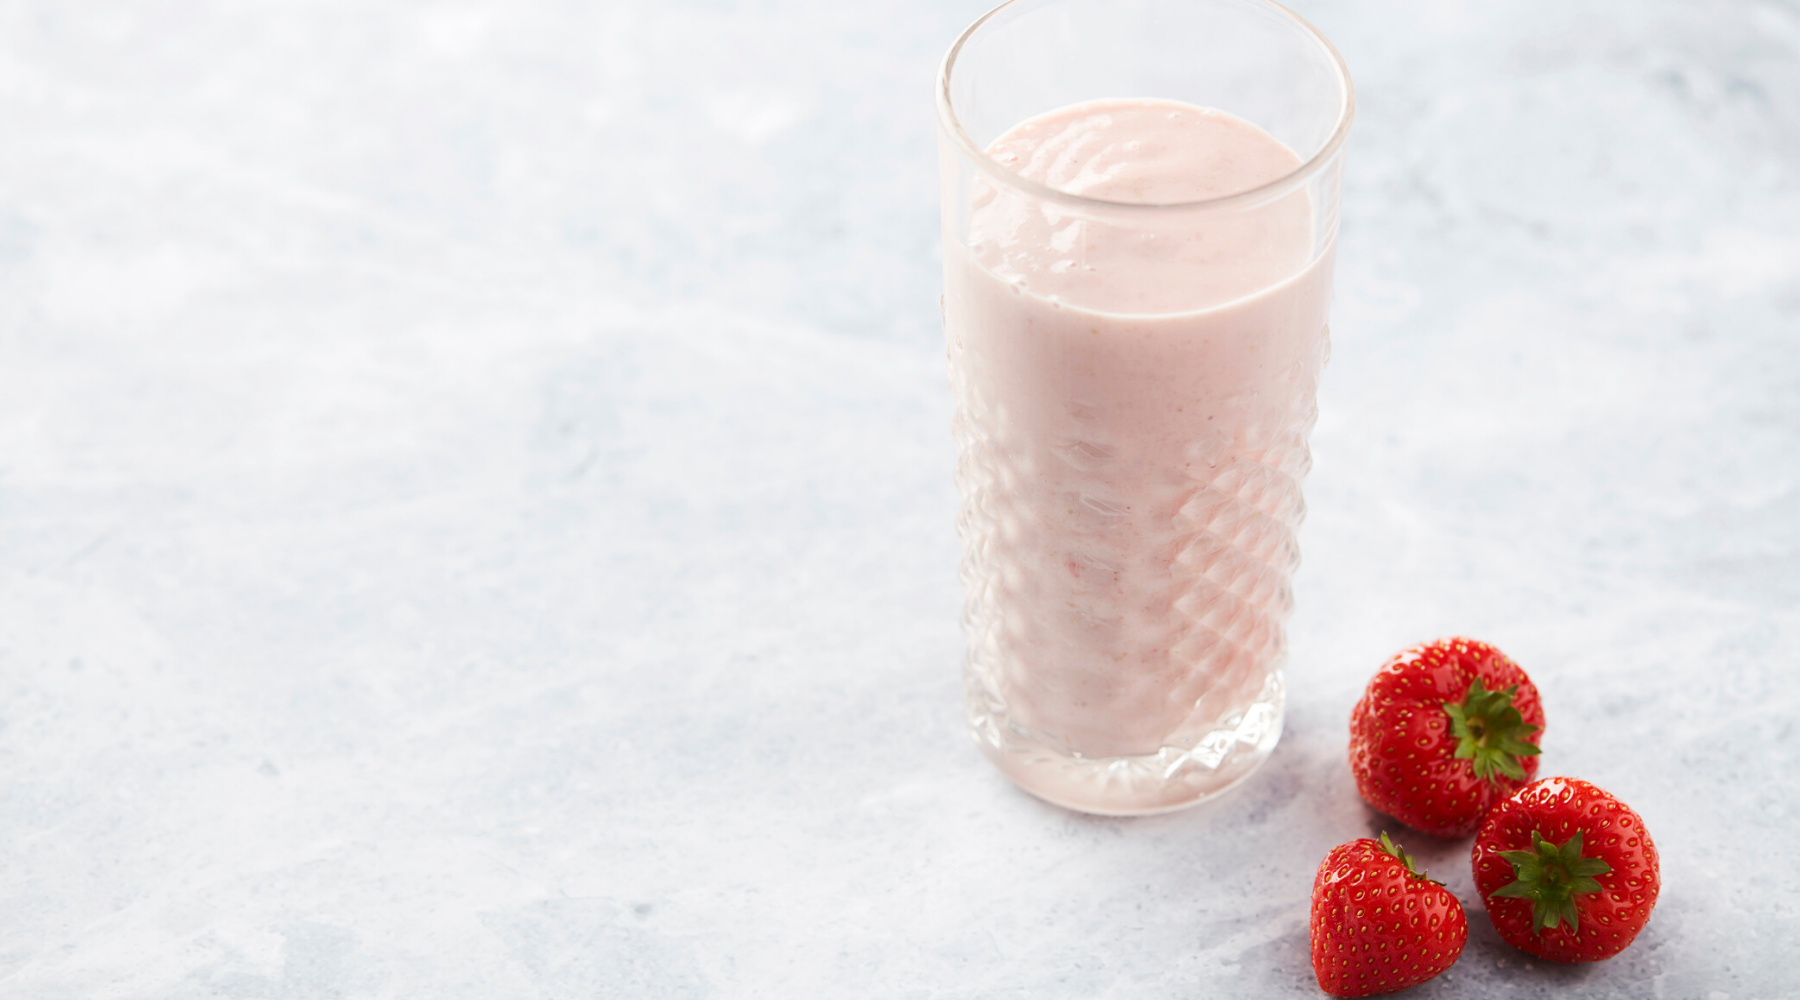 Recept: aardbei-havermout-smoothie